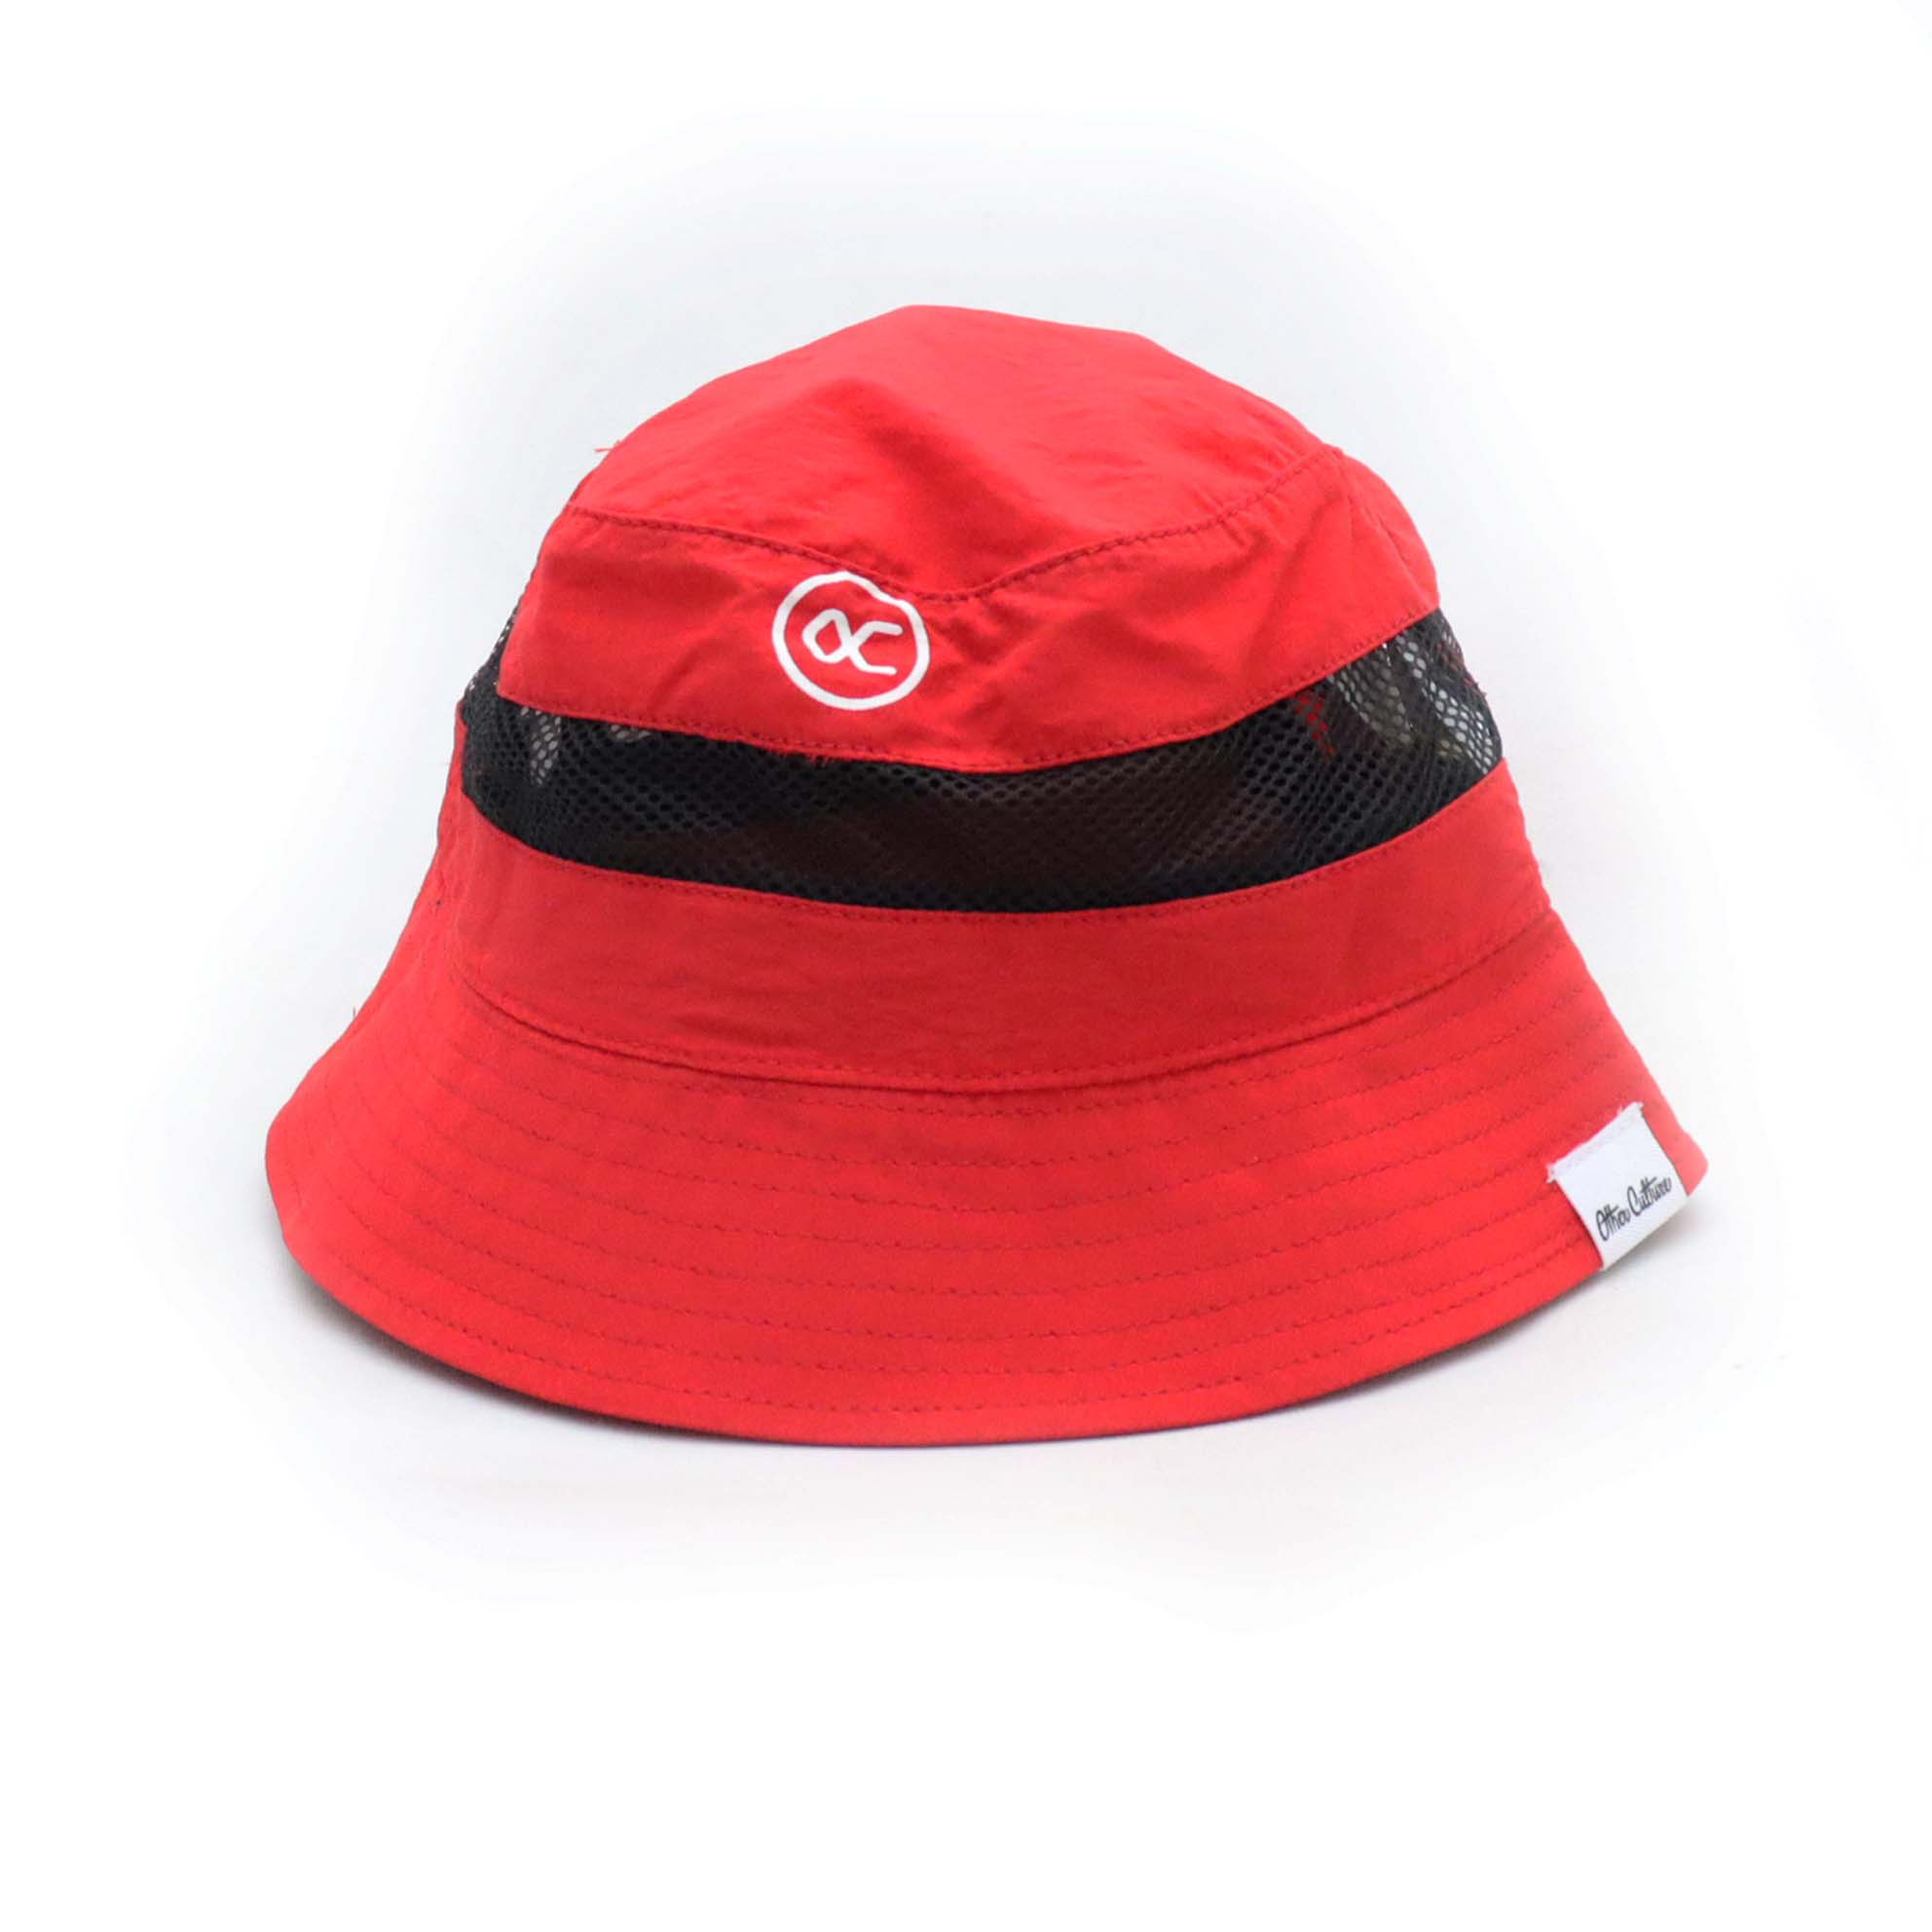 Bucket Other Culture Ship - Vermelho